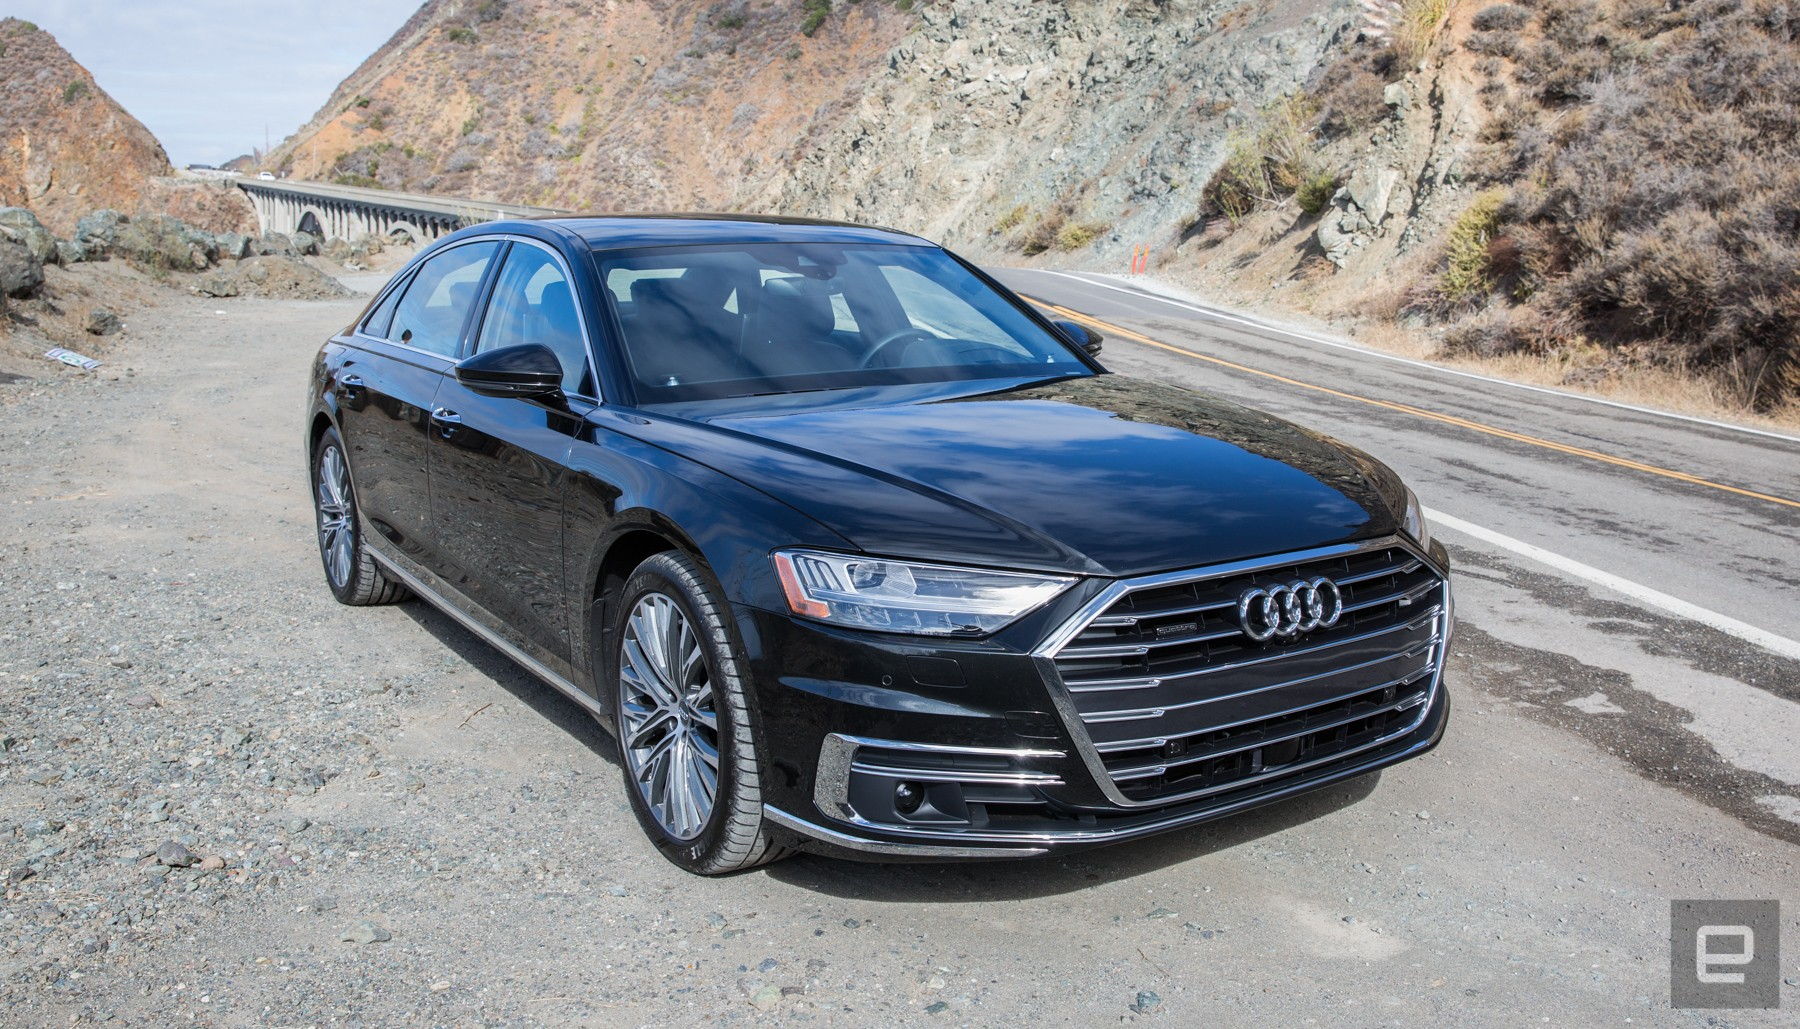 Audi A An Evolution In Luxury And Tech - Audi a8